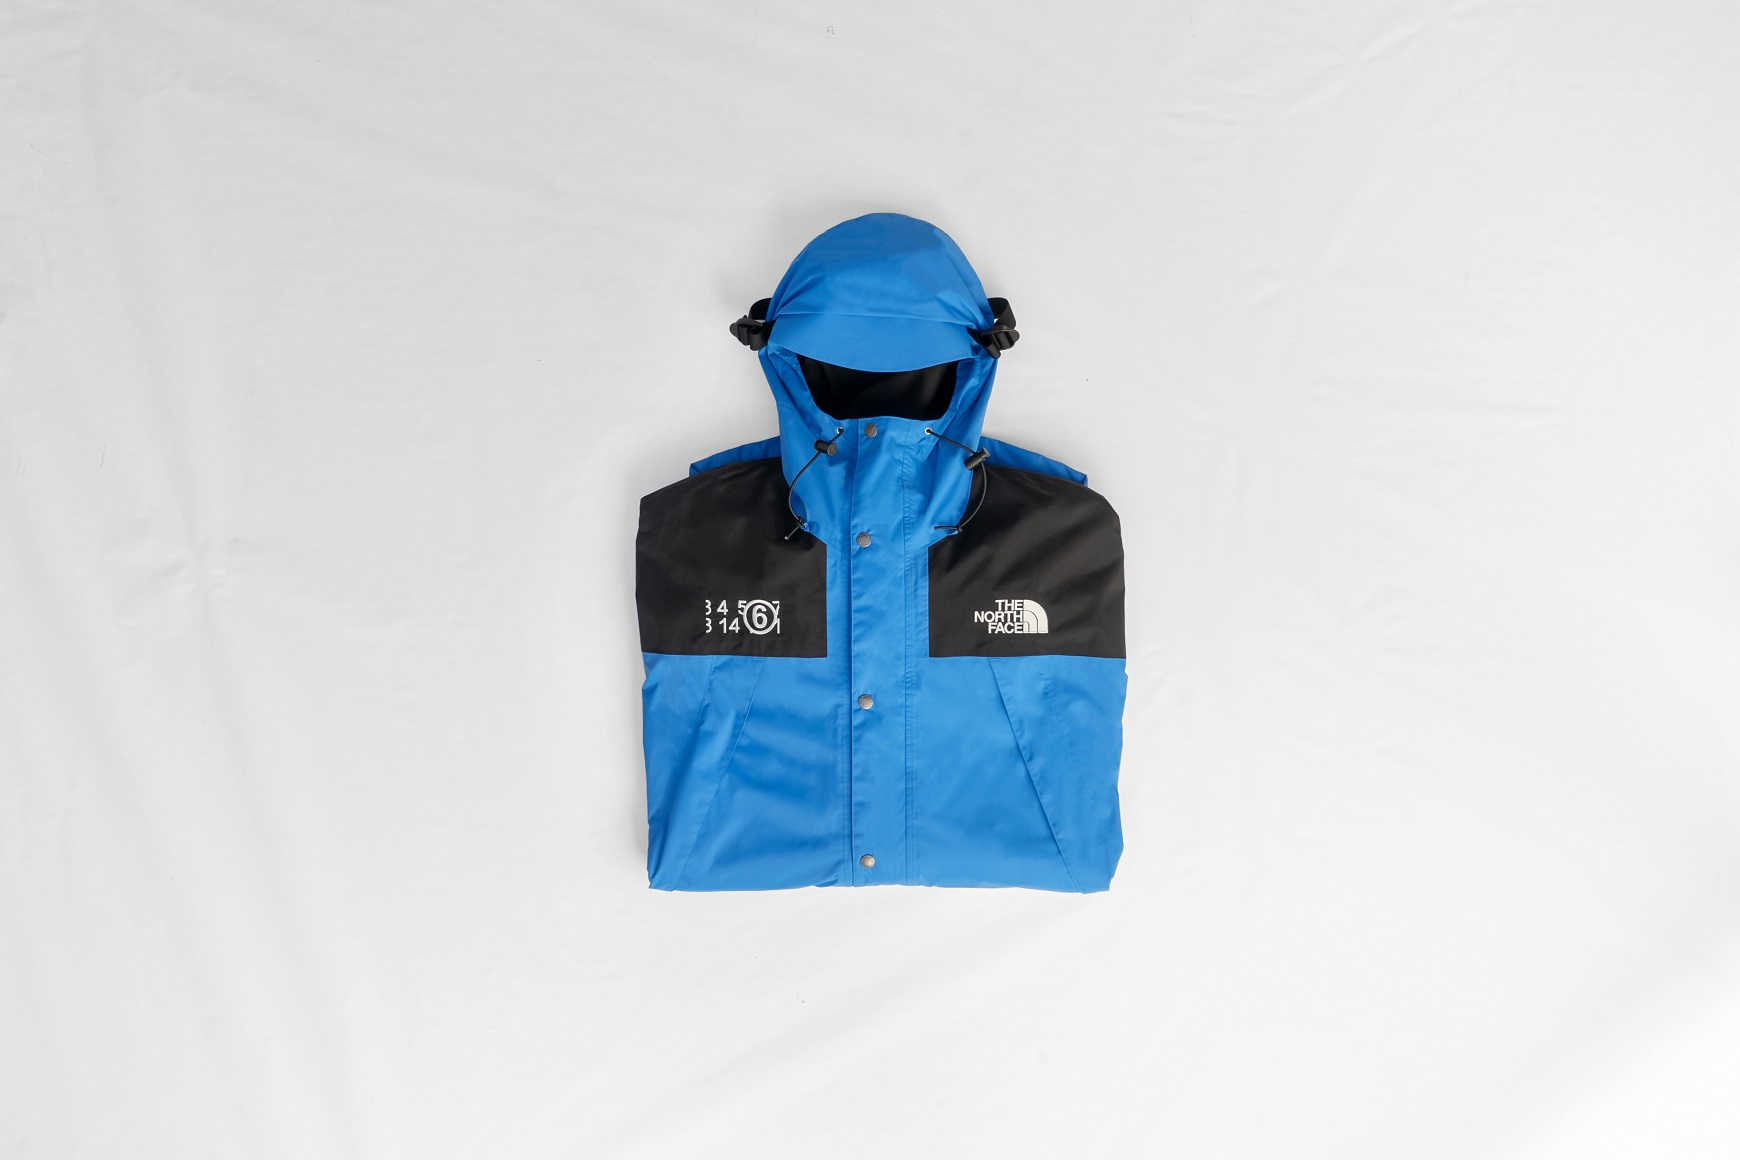 MM6 Maison Margiela Collaborates with The North Face